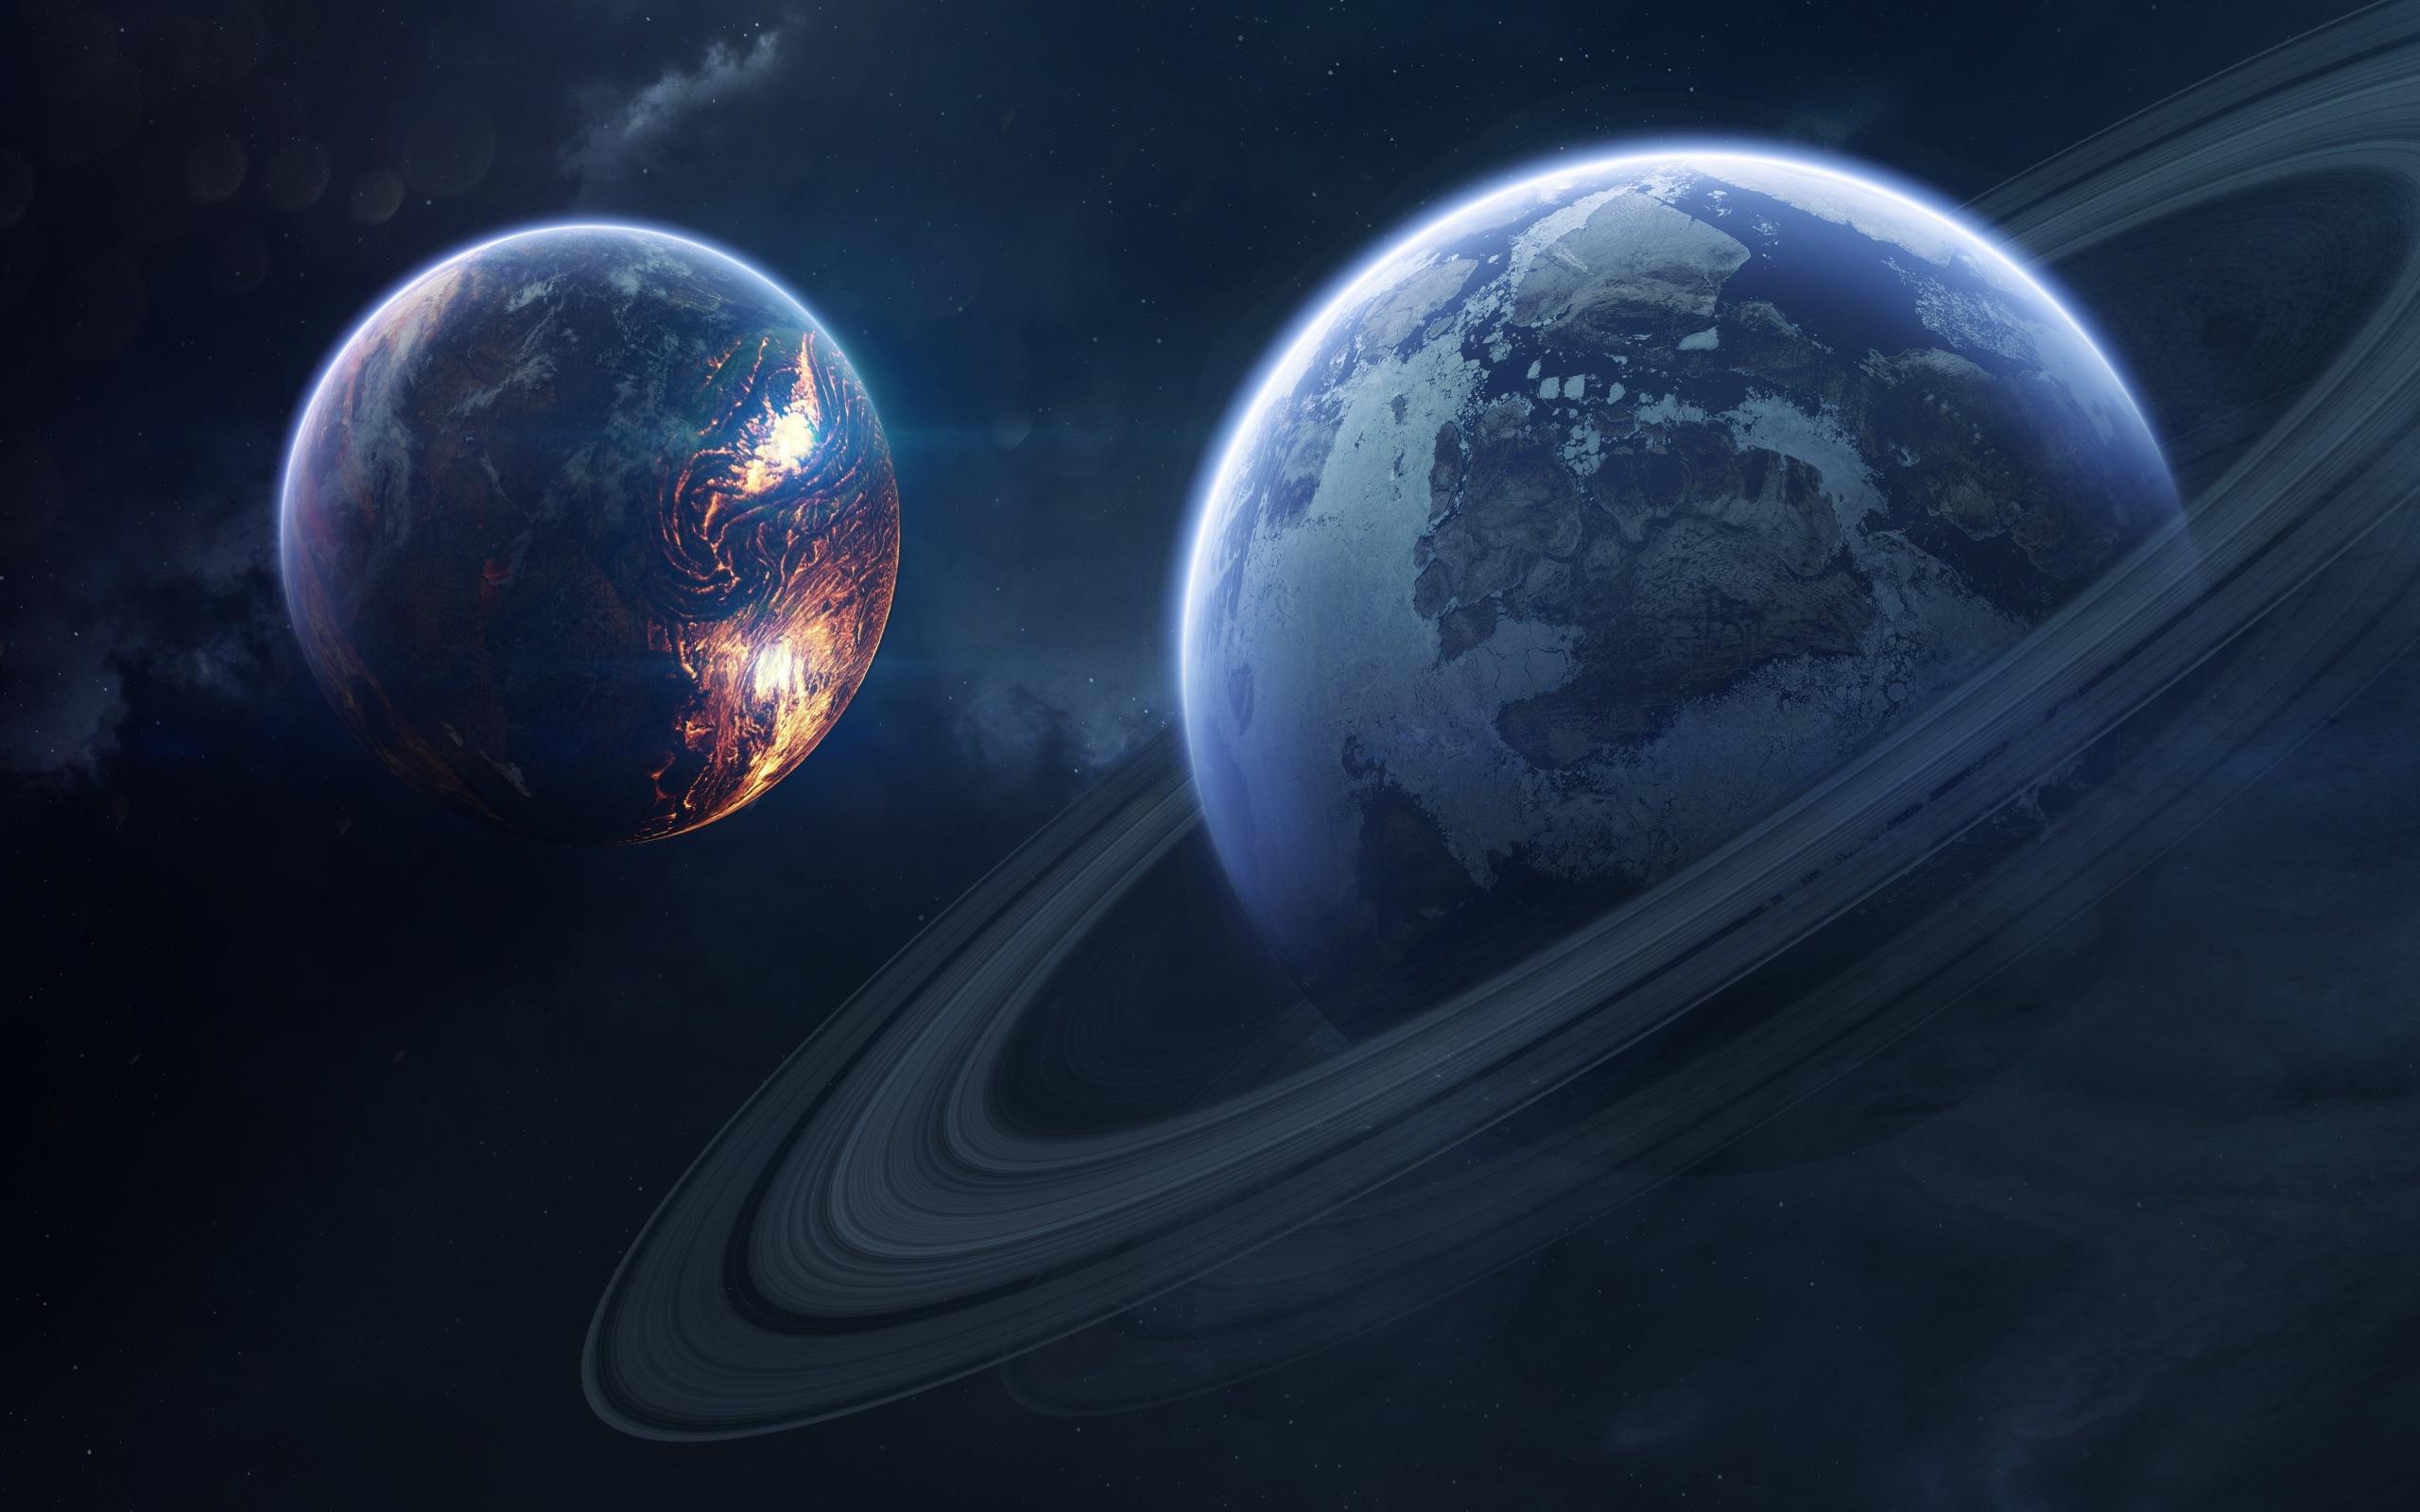 Saturn, space, planet of rings, 2560x1600 wallpaper